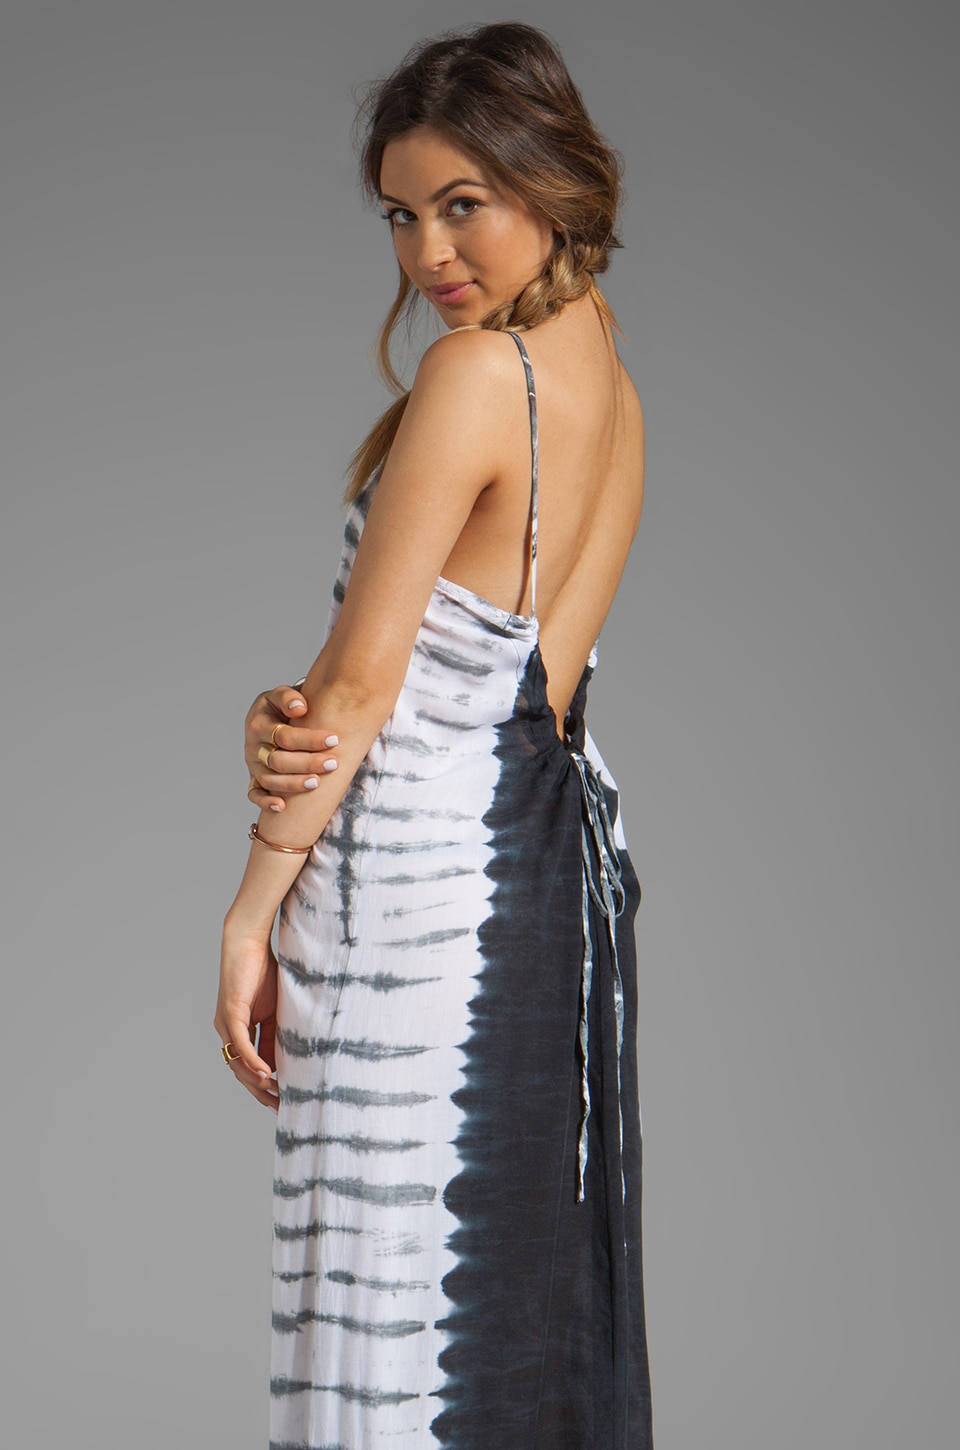 Tiare Hawaii Sandy Maxi Dress in Black/White/Grey